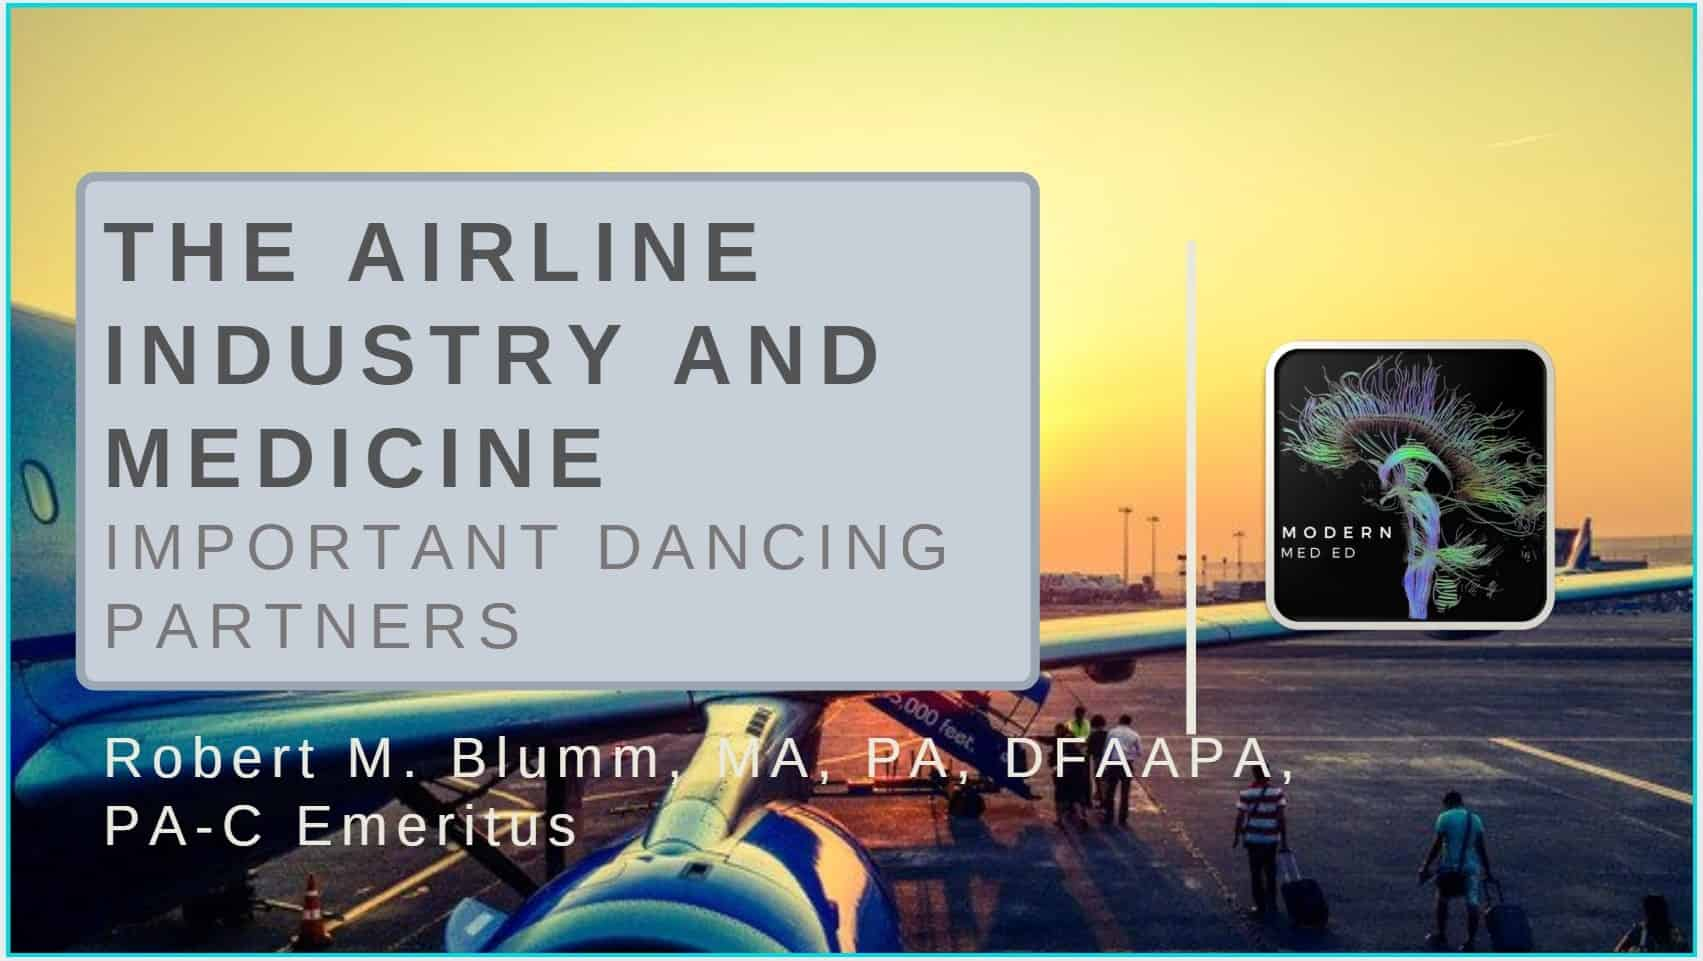 Medicolegal Mishaps: Medicine and the Airline Industry